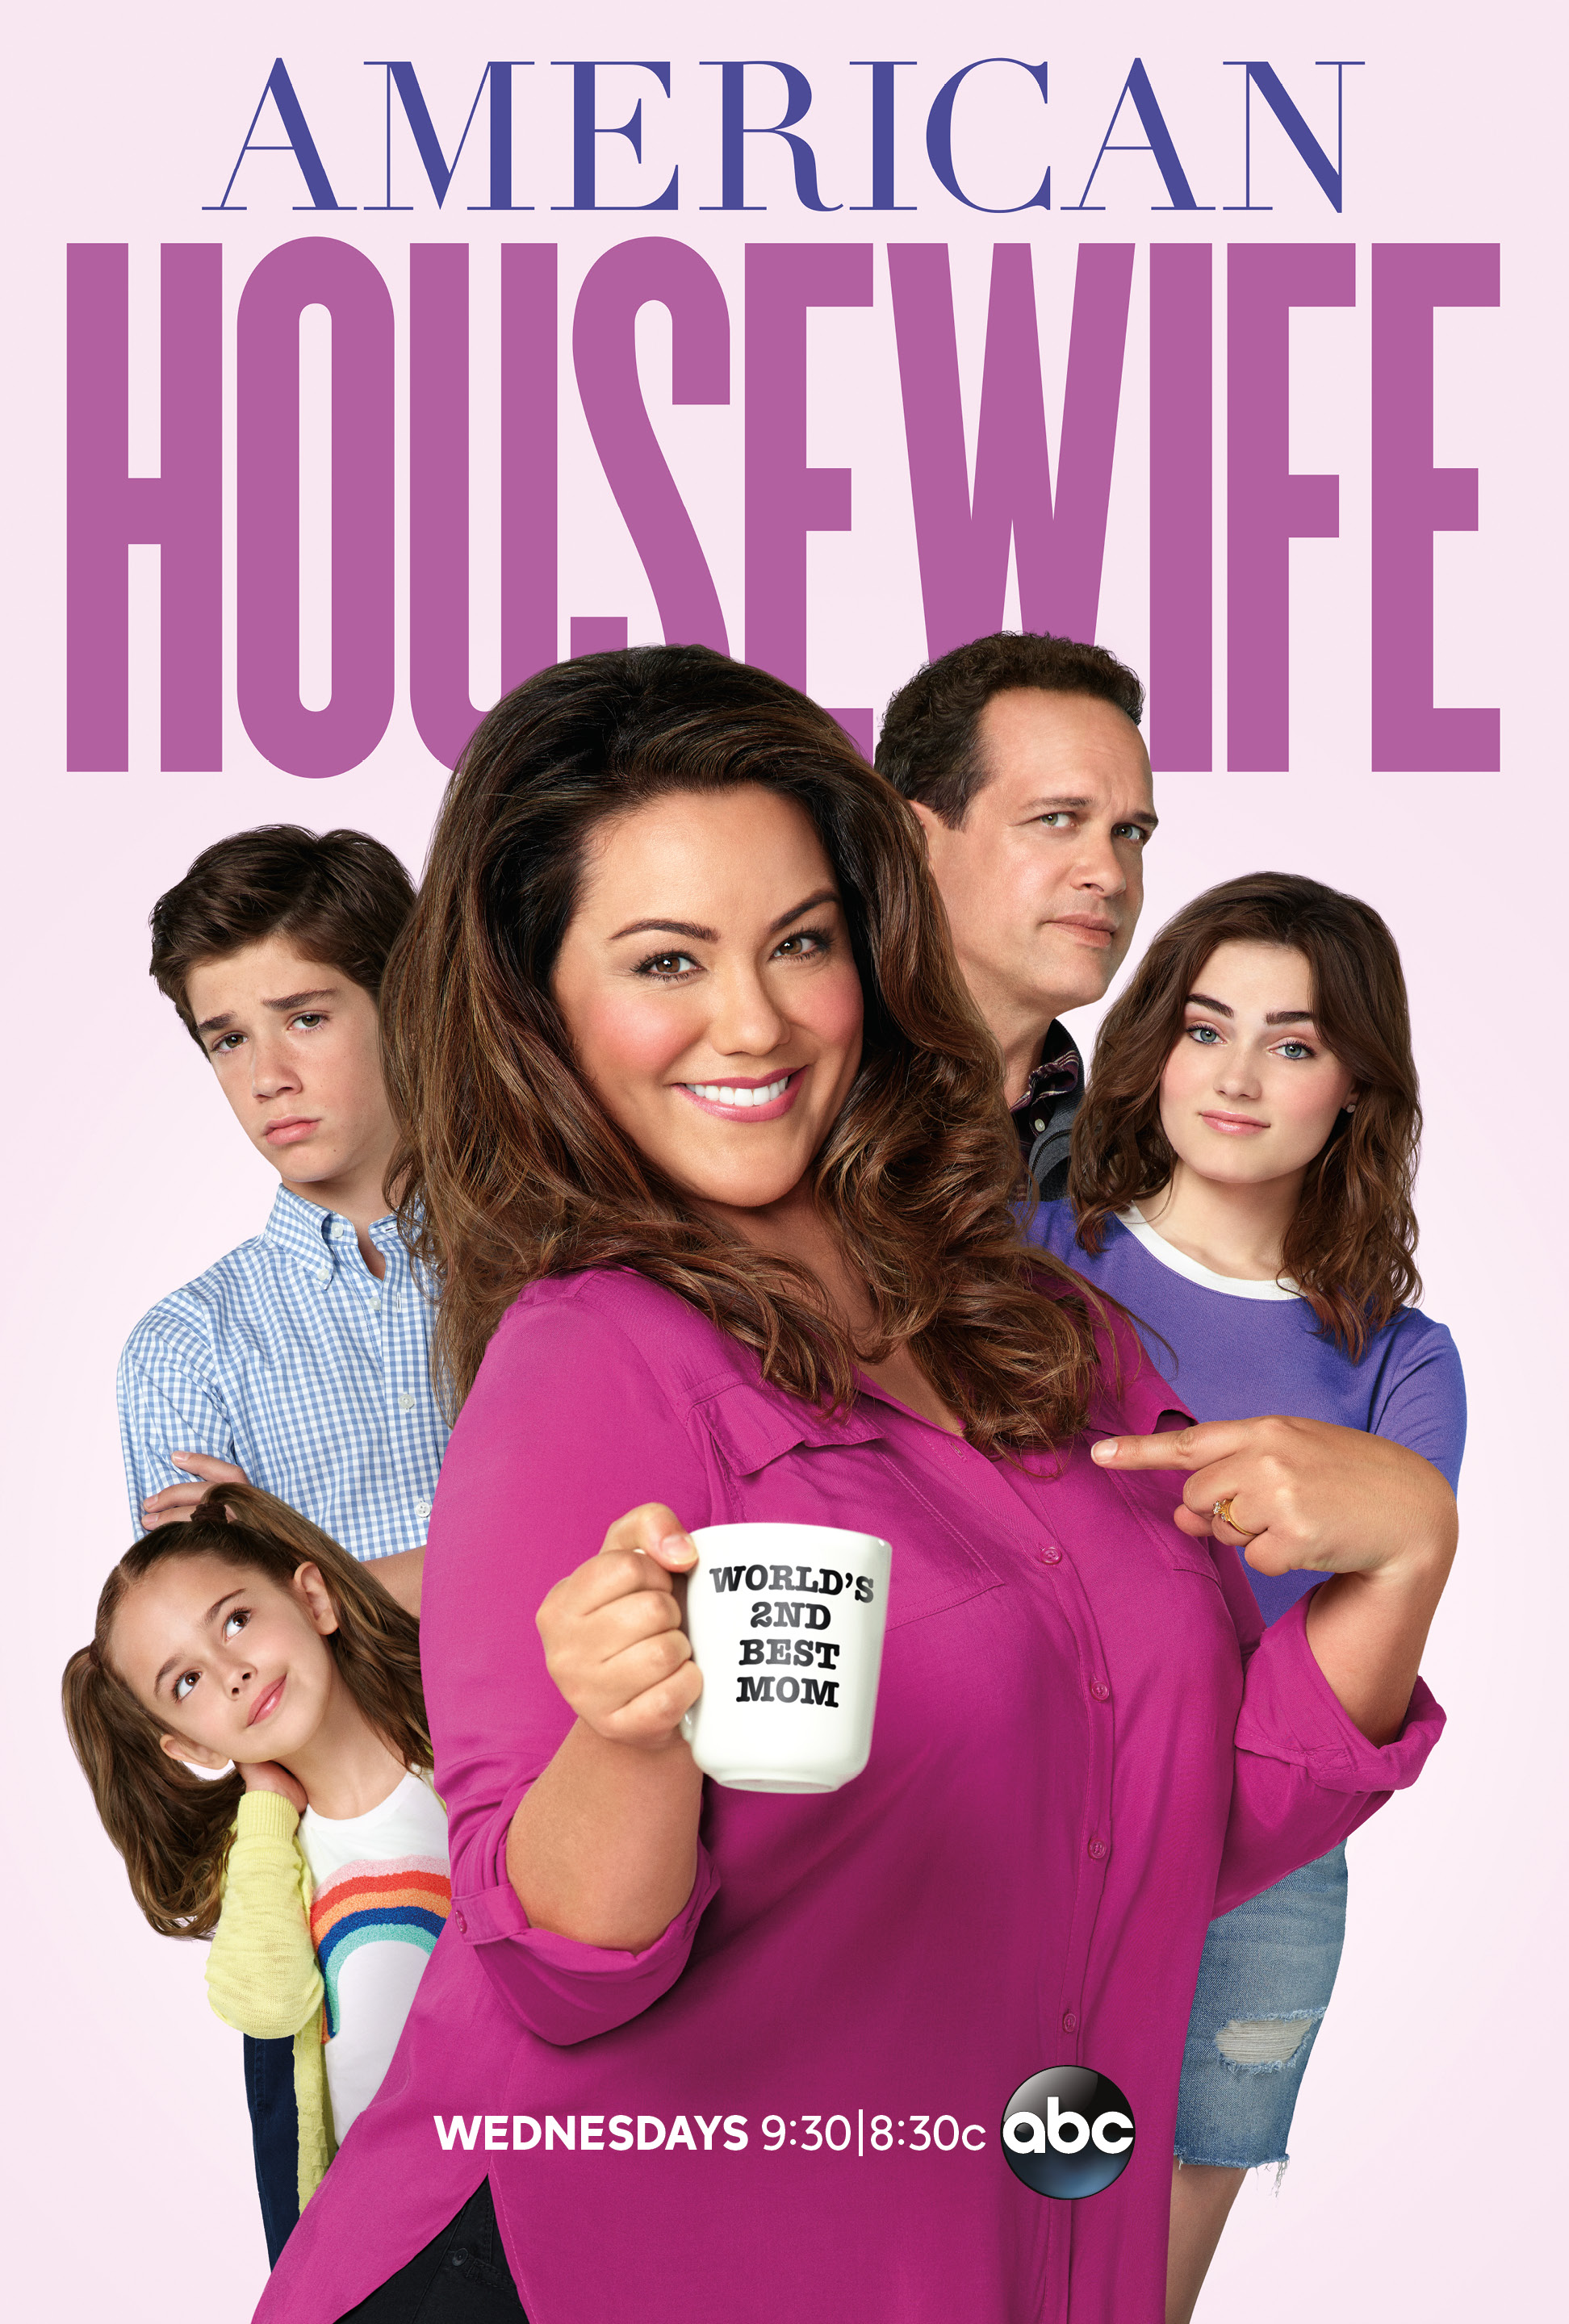 American Housewife - Season 4 Episode 5 - The Maze